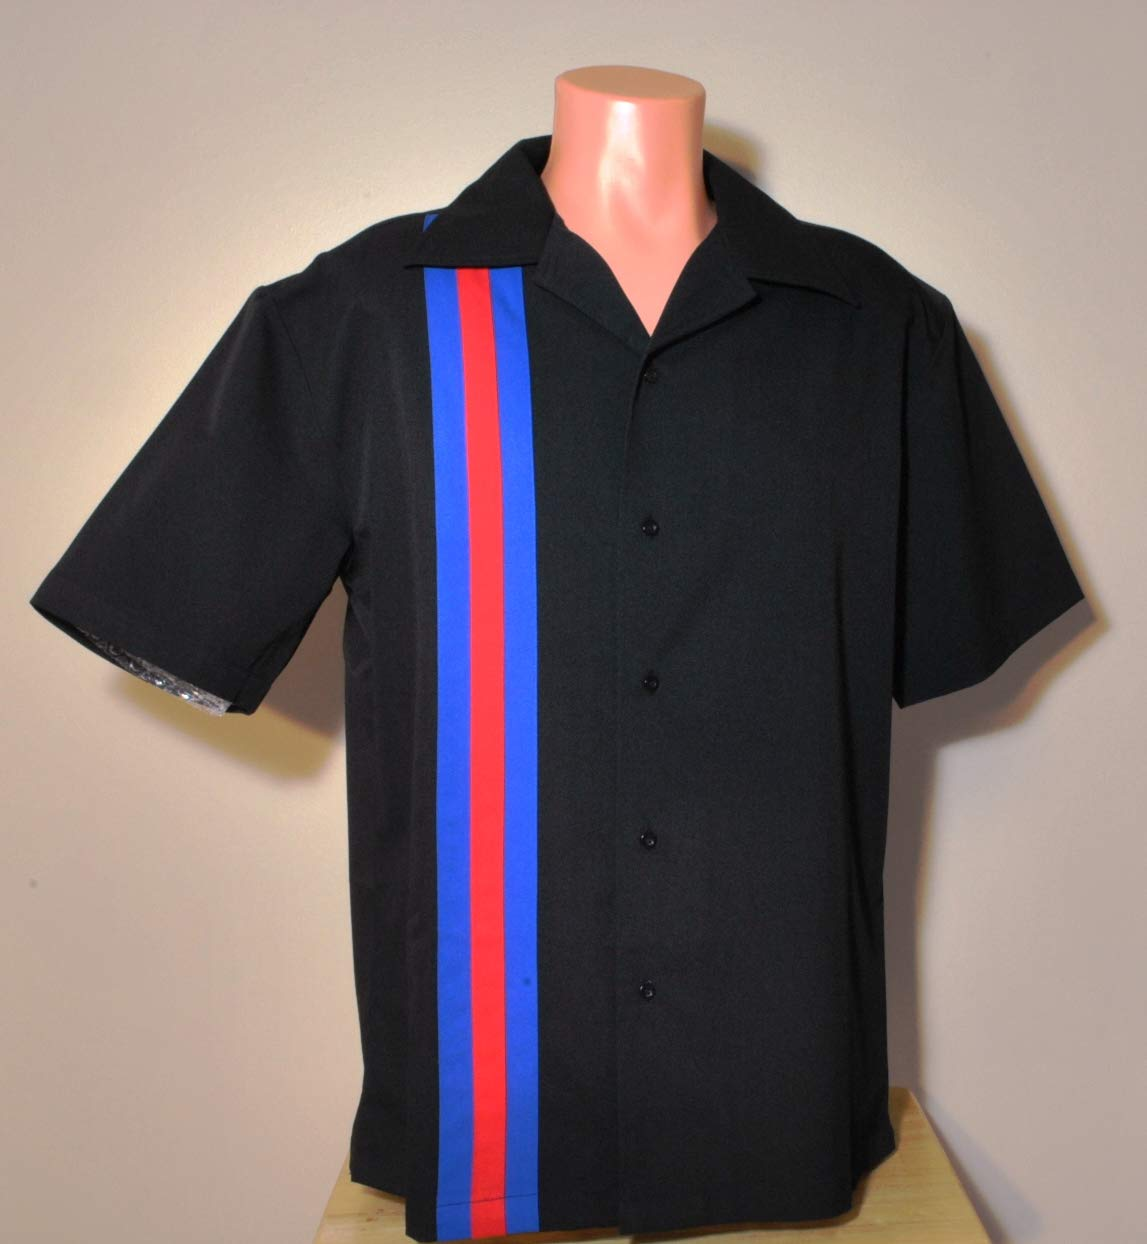 Designs by Attila Mens Leisure Bowling Shirt, 50's Style. Size 2XLT Tall USMC